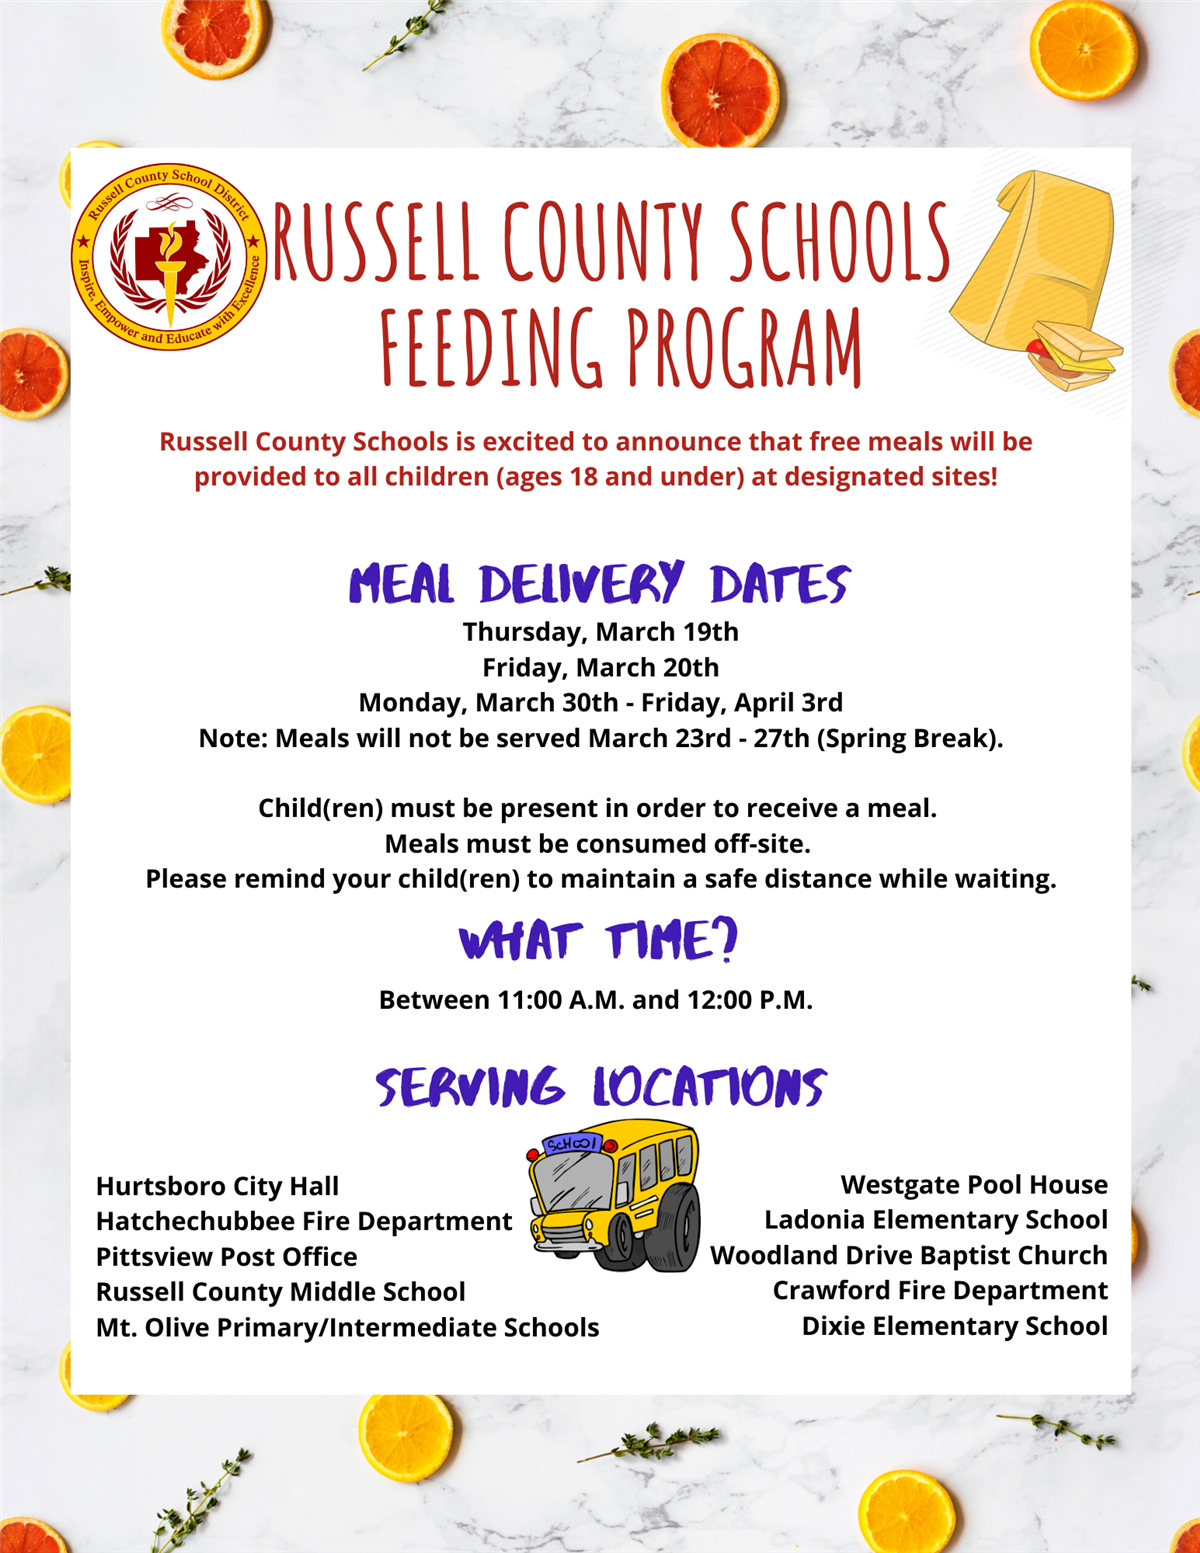 Feeding Program Information